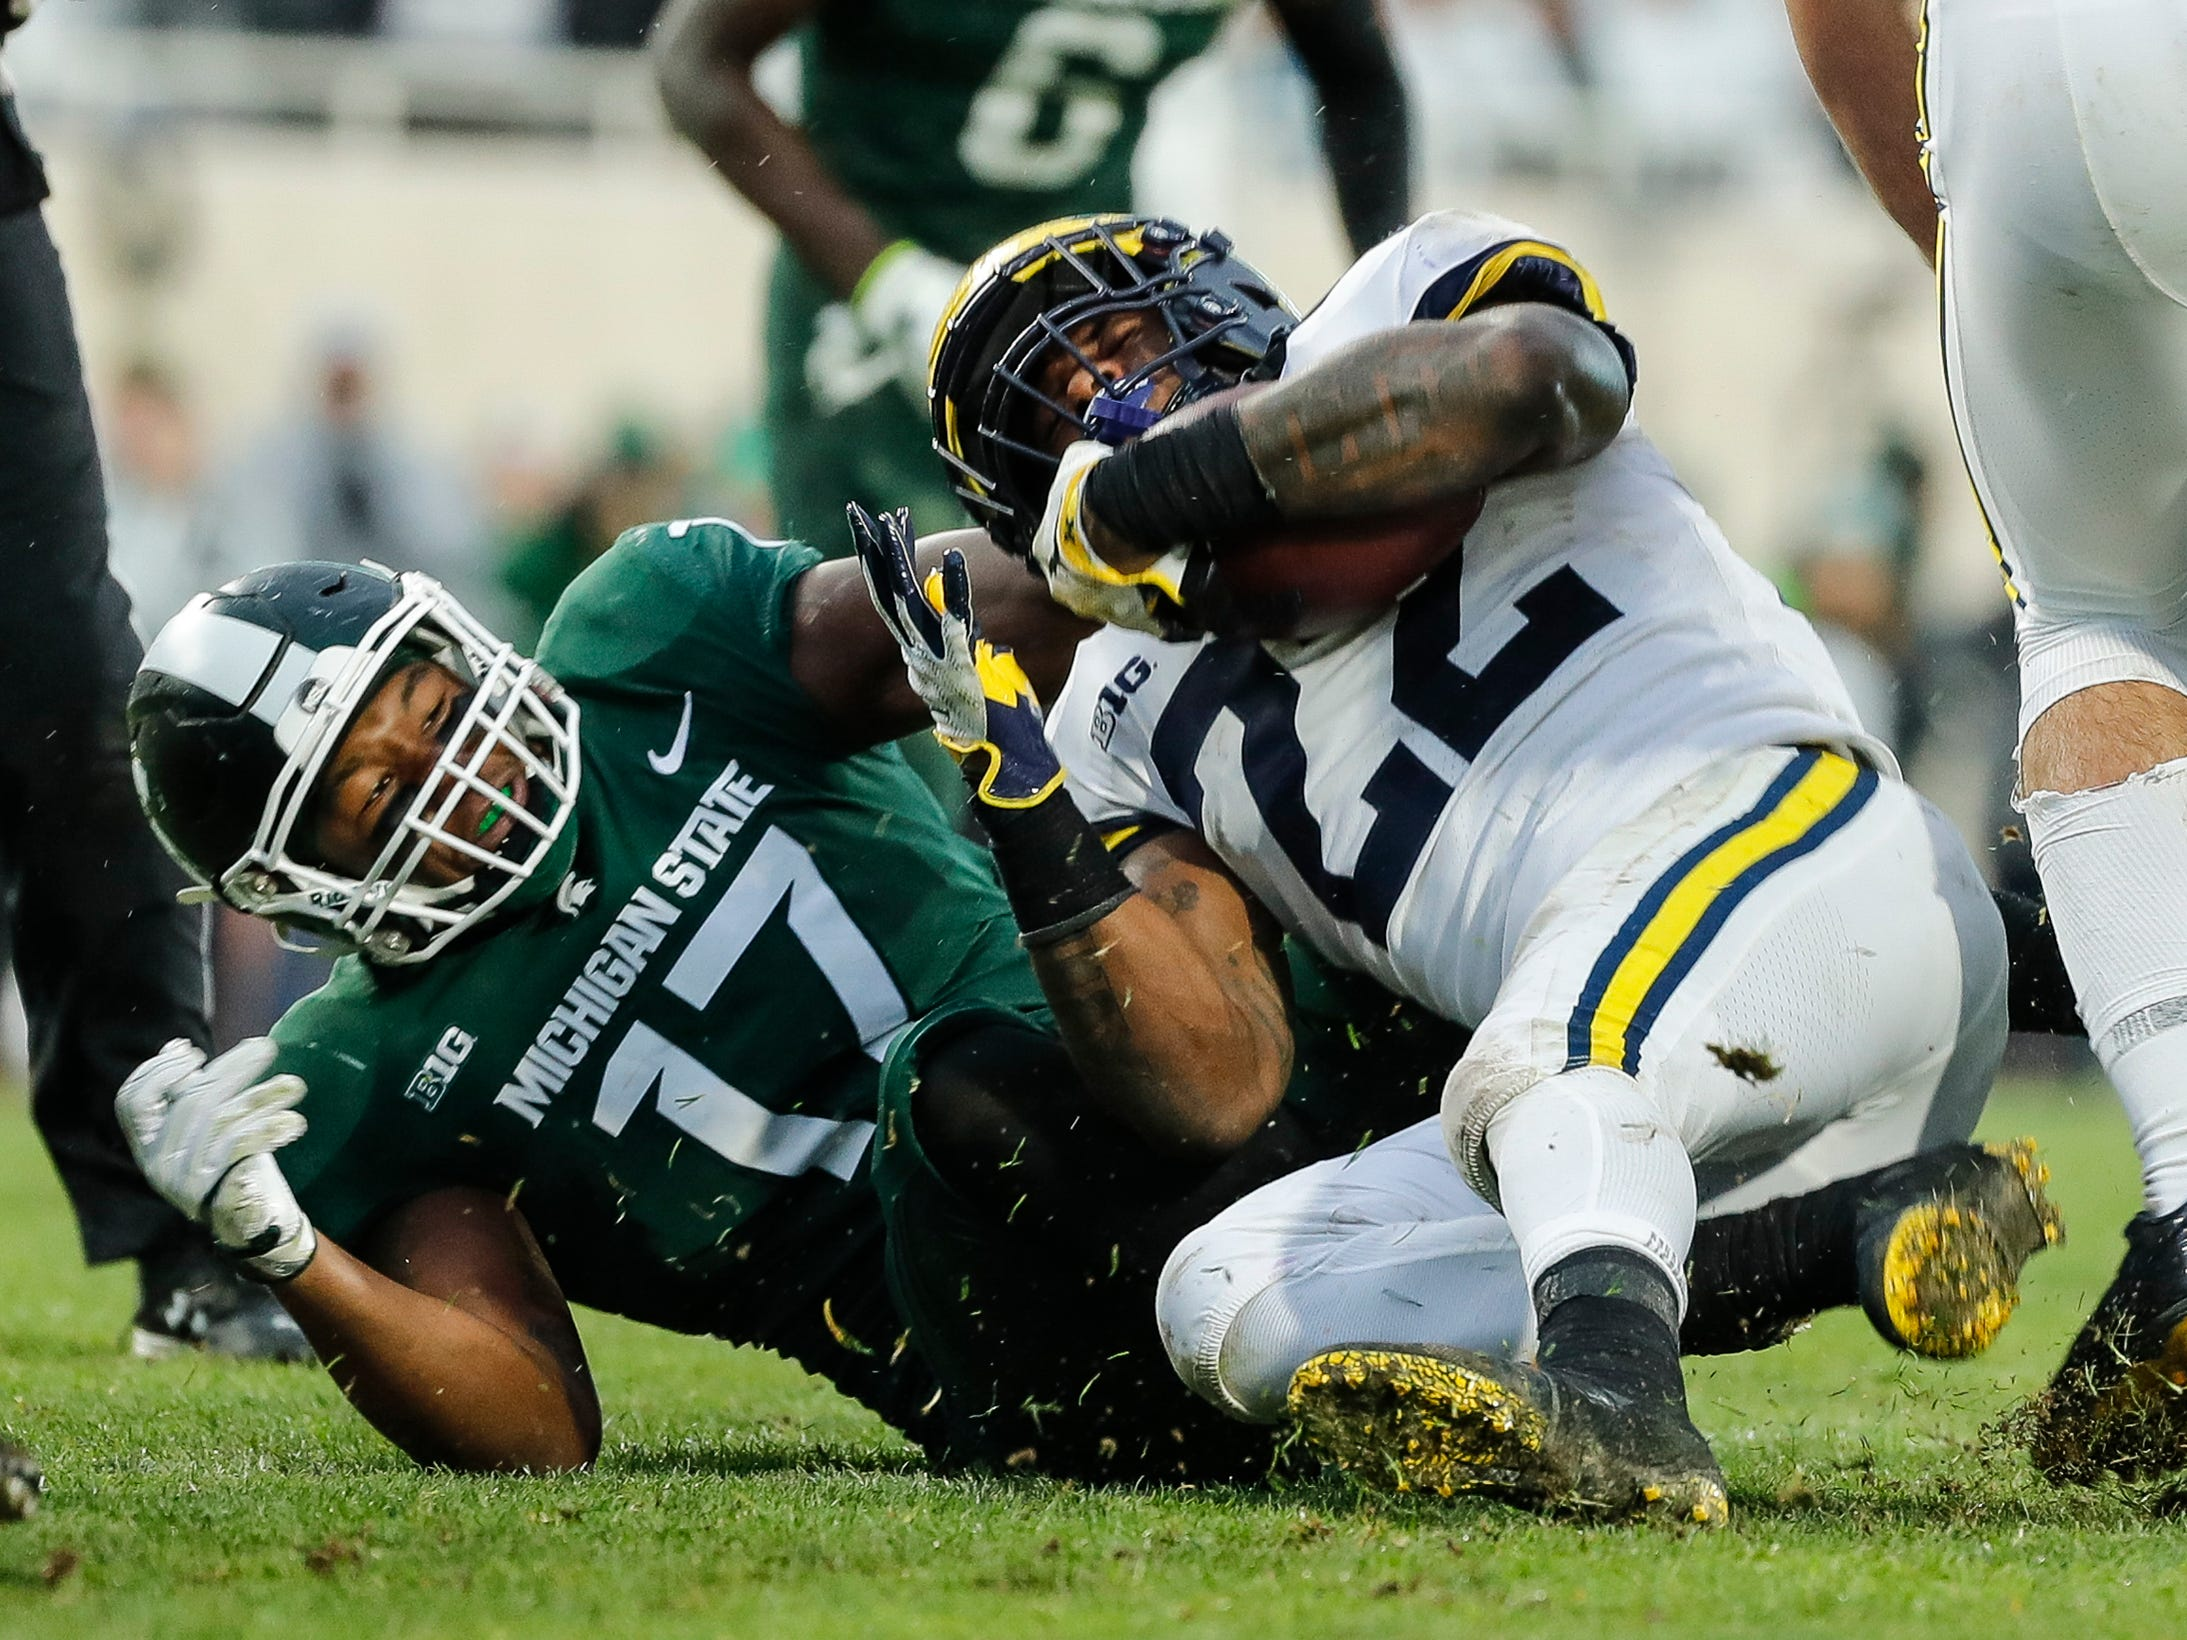 Michigan running back Karan Higdon is stopped by Michigan State linebacker Tyriq Thompson during the second half at Spartan Stadium in East Lansing, Saturday, Oct. 20, 2018.